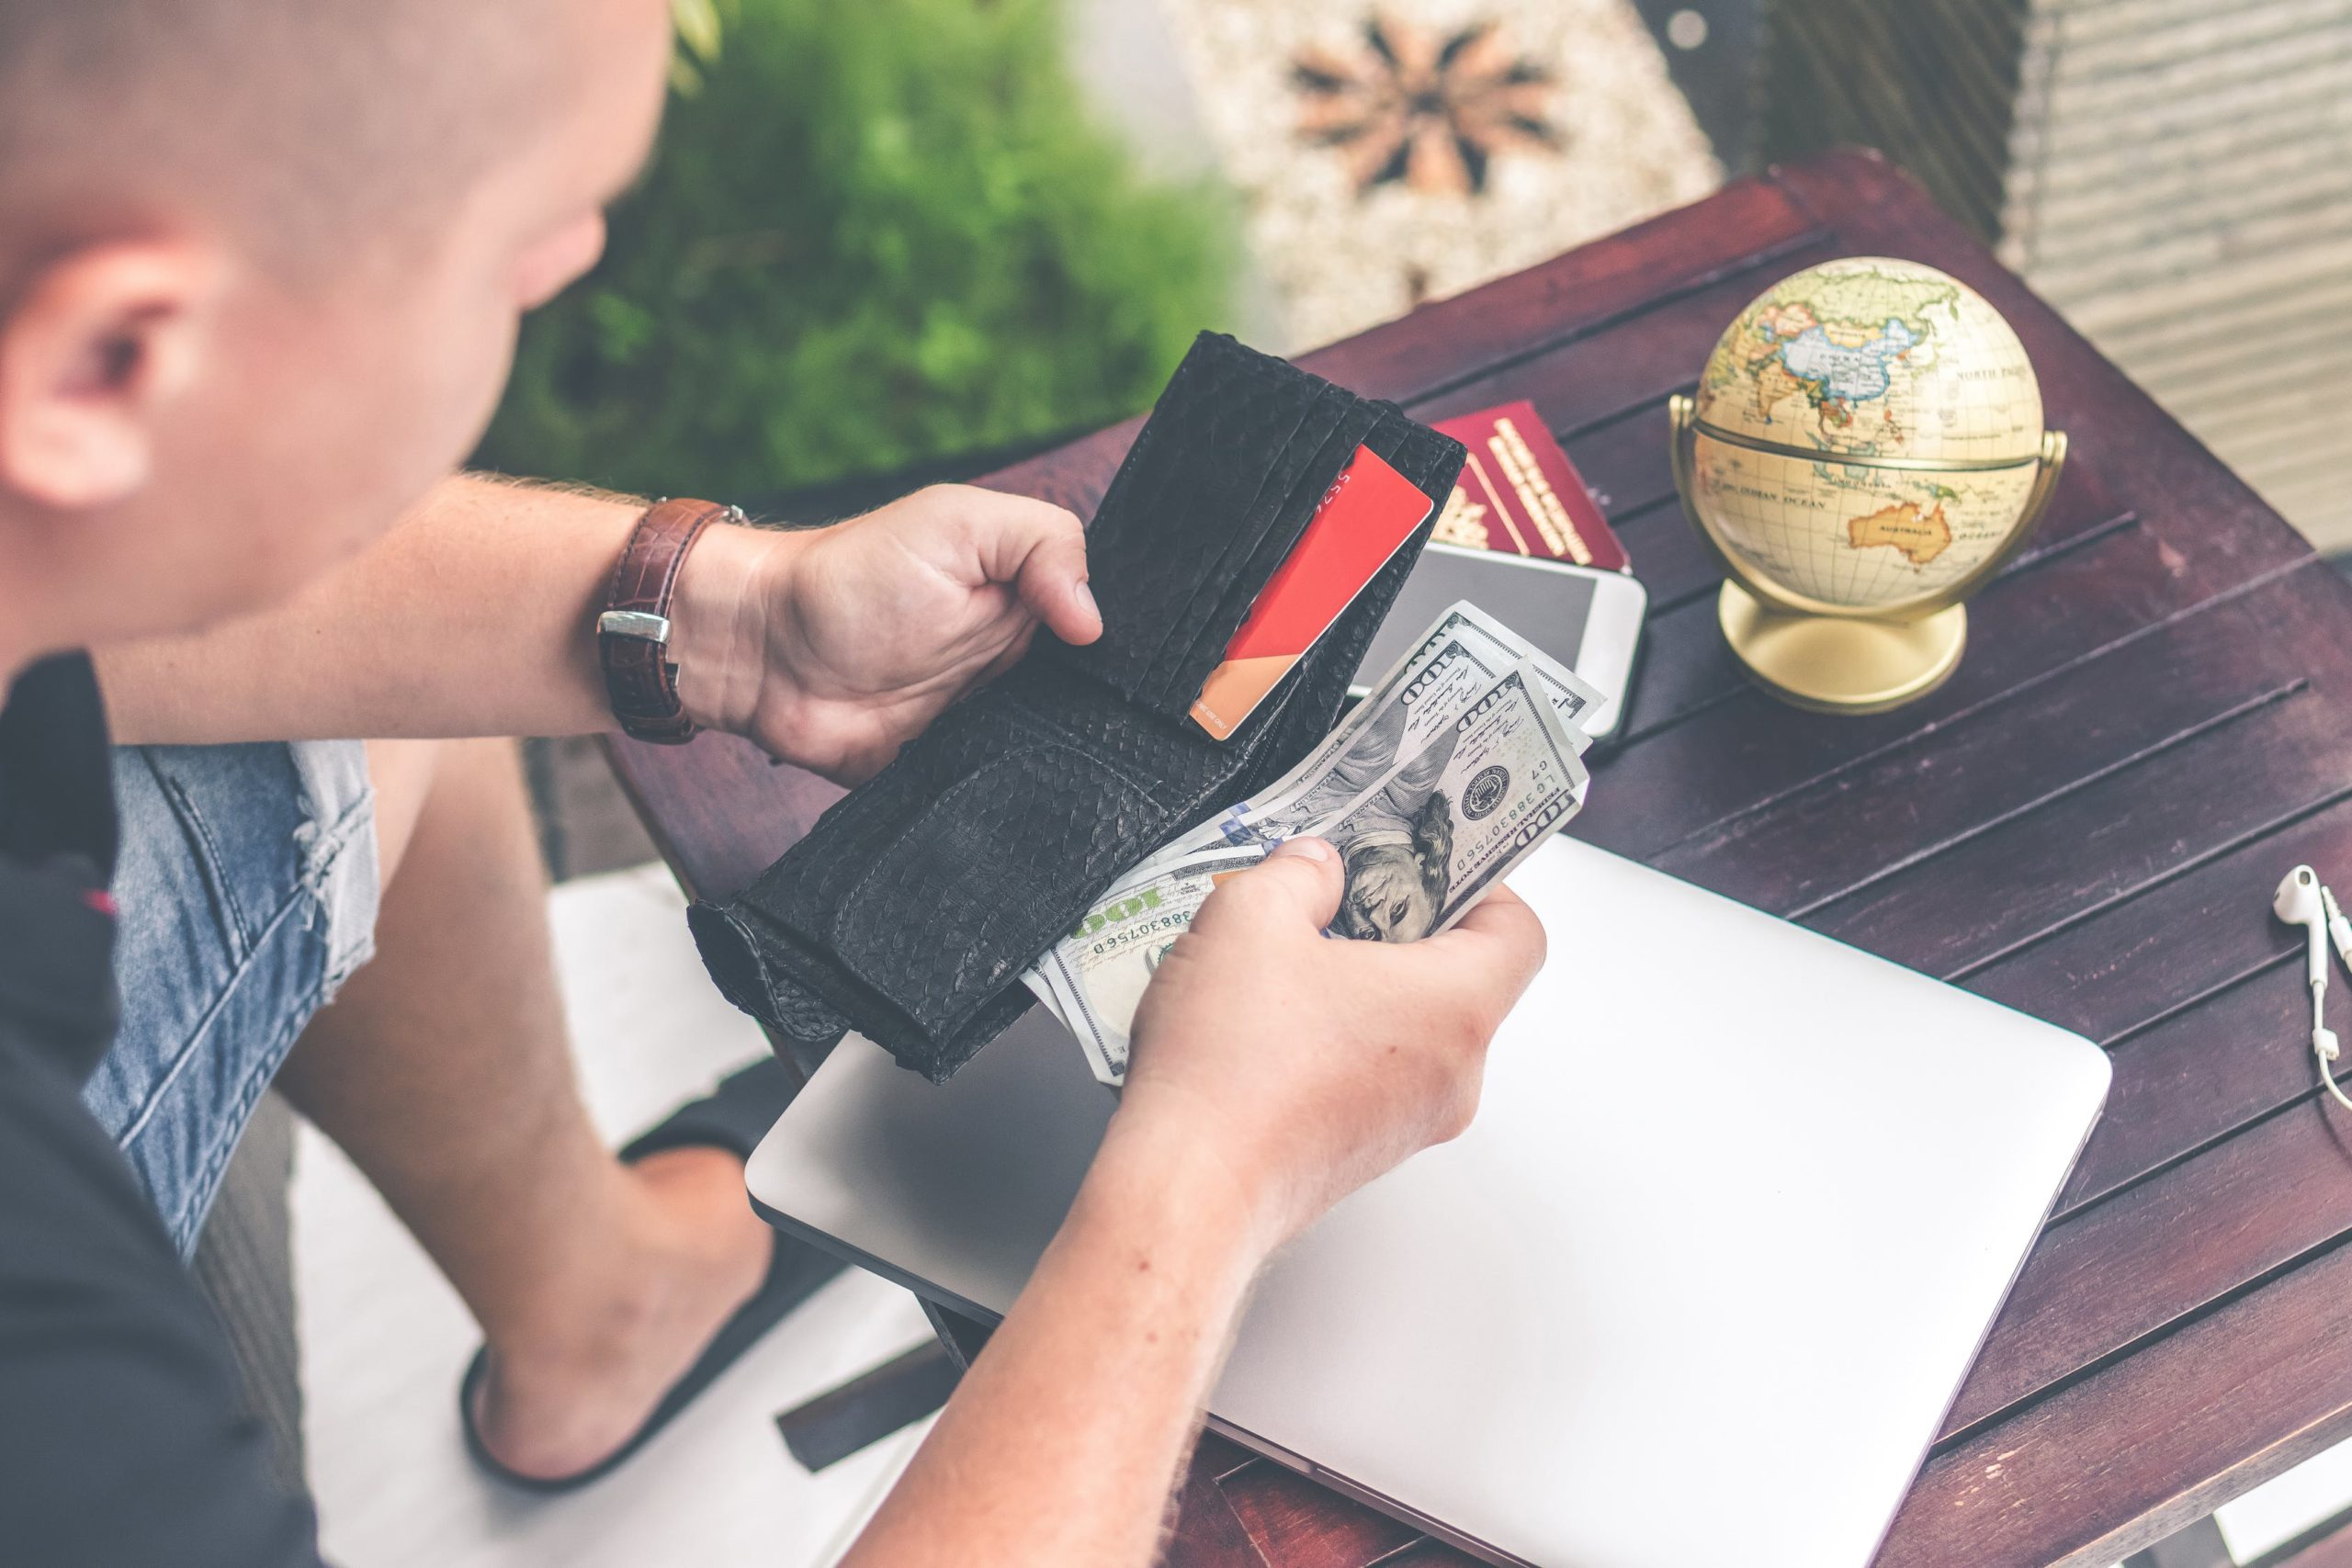 Emergency Loans for Bad Credit: Where to Get a Fast Loan